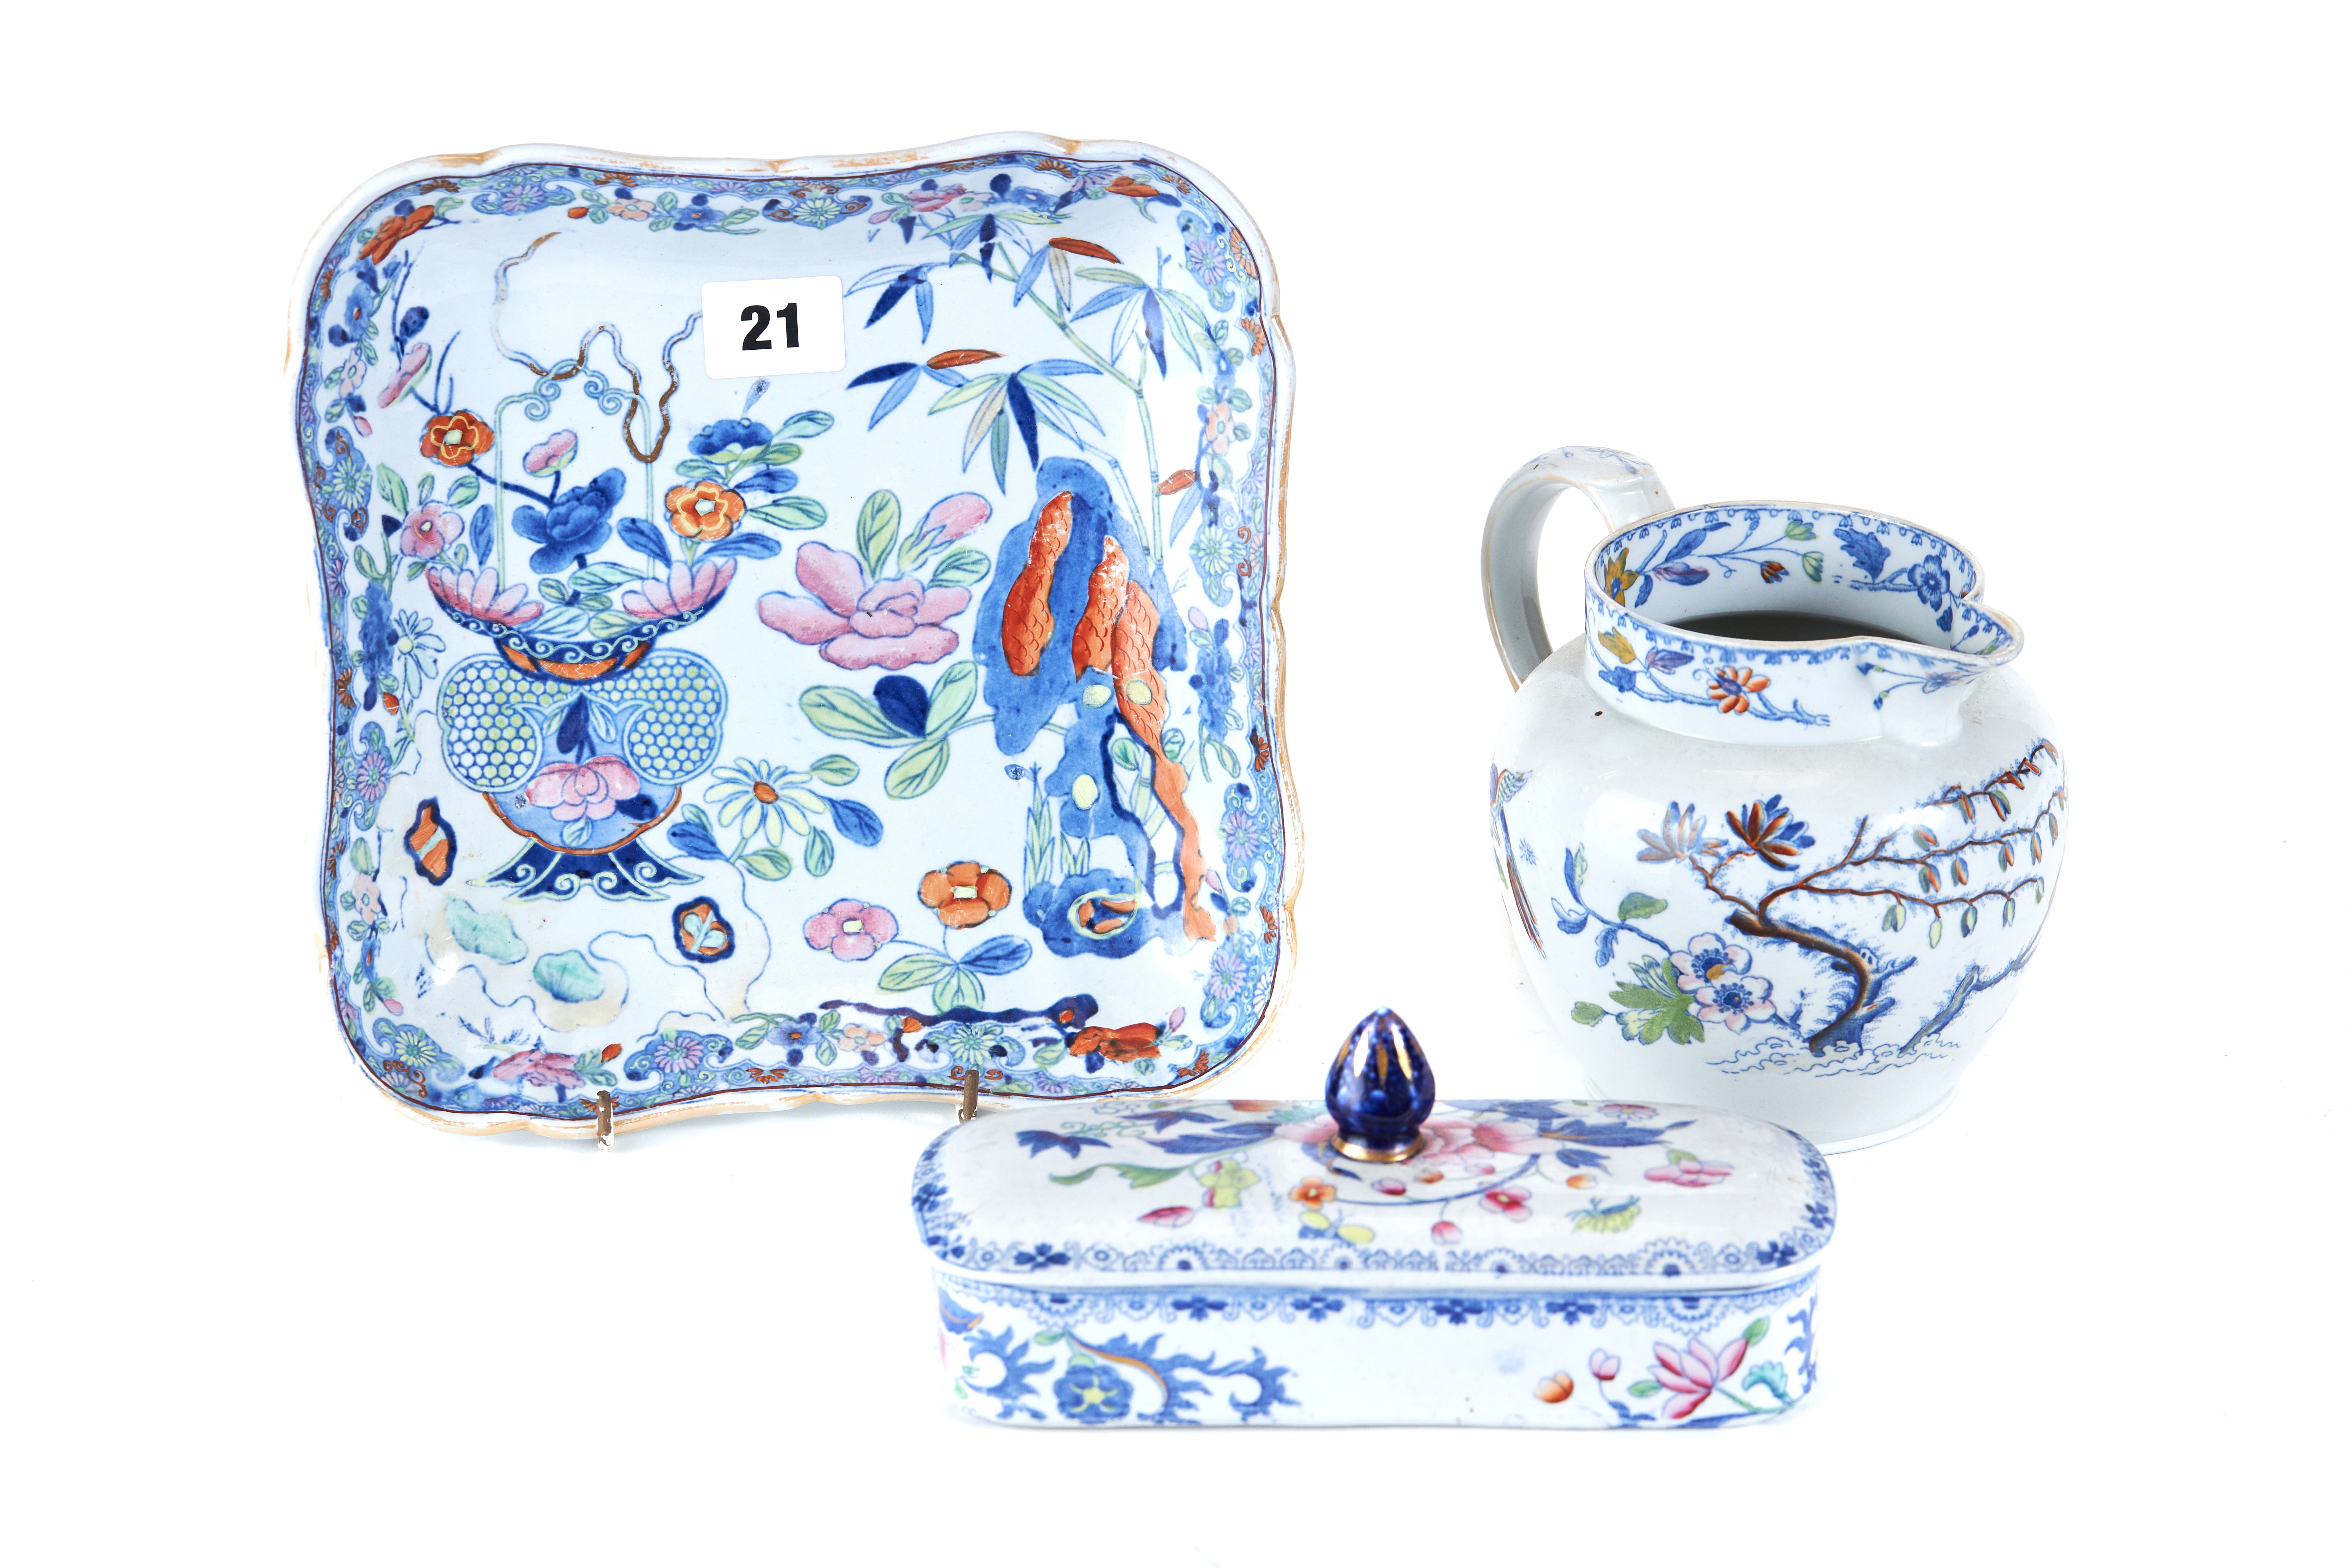 Lot 21 - A PAIR OF 19TH CENTURY MASON'S IRONSTONE FLORAL DECORATED SQUARE DISHES,